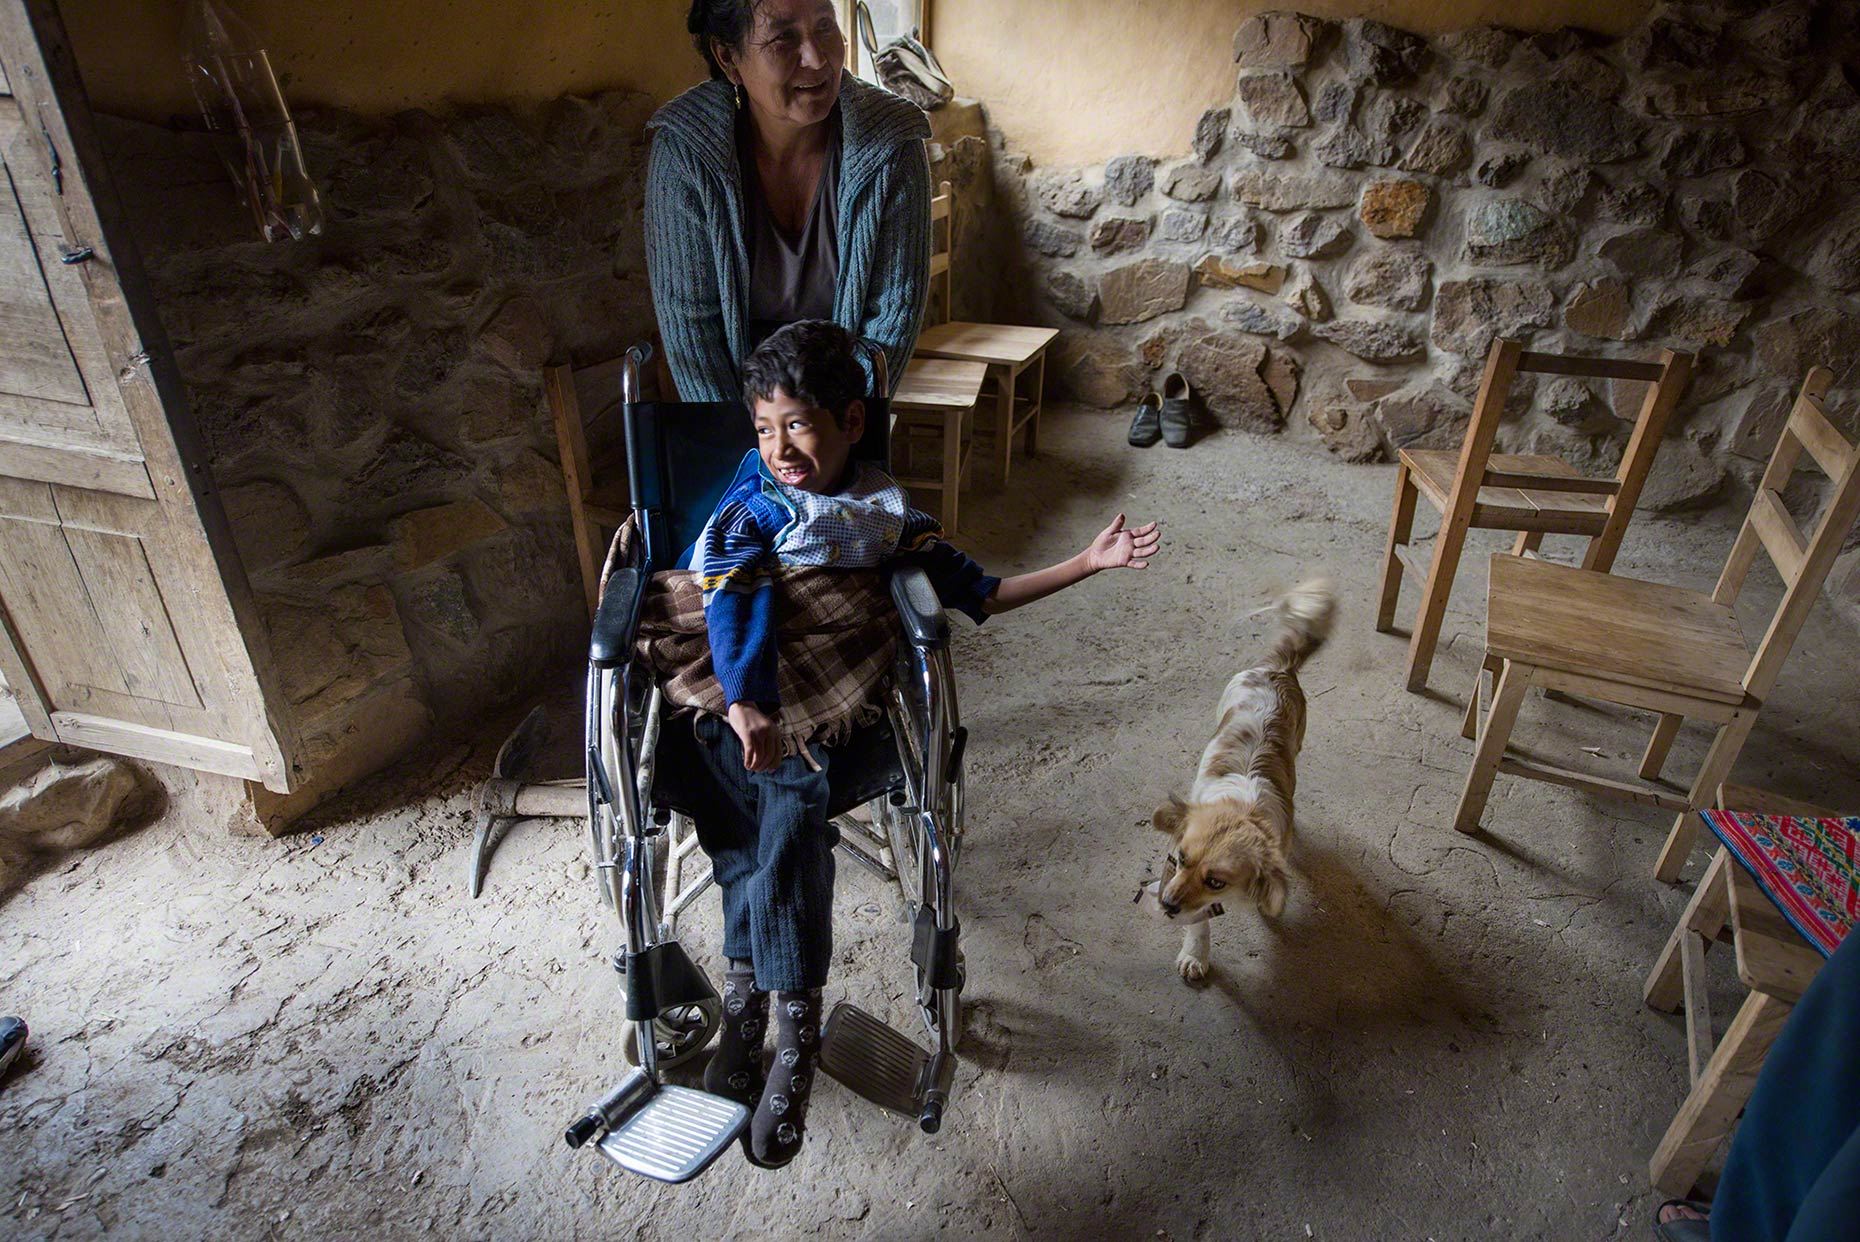 Silla de Ruedas Many disabled children in Peru will never have a wheelchair. This one was given to the Reyes Family by Living Heart Peru, an organization dedicated to supporting families in the Andean highlands.